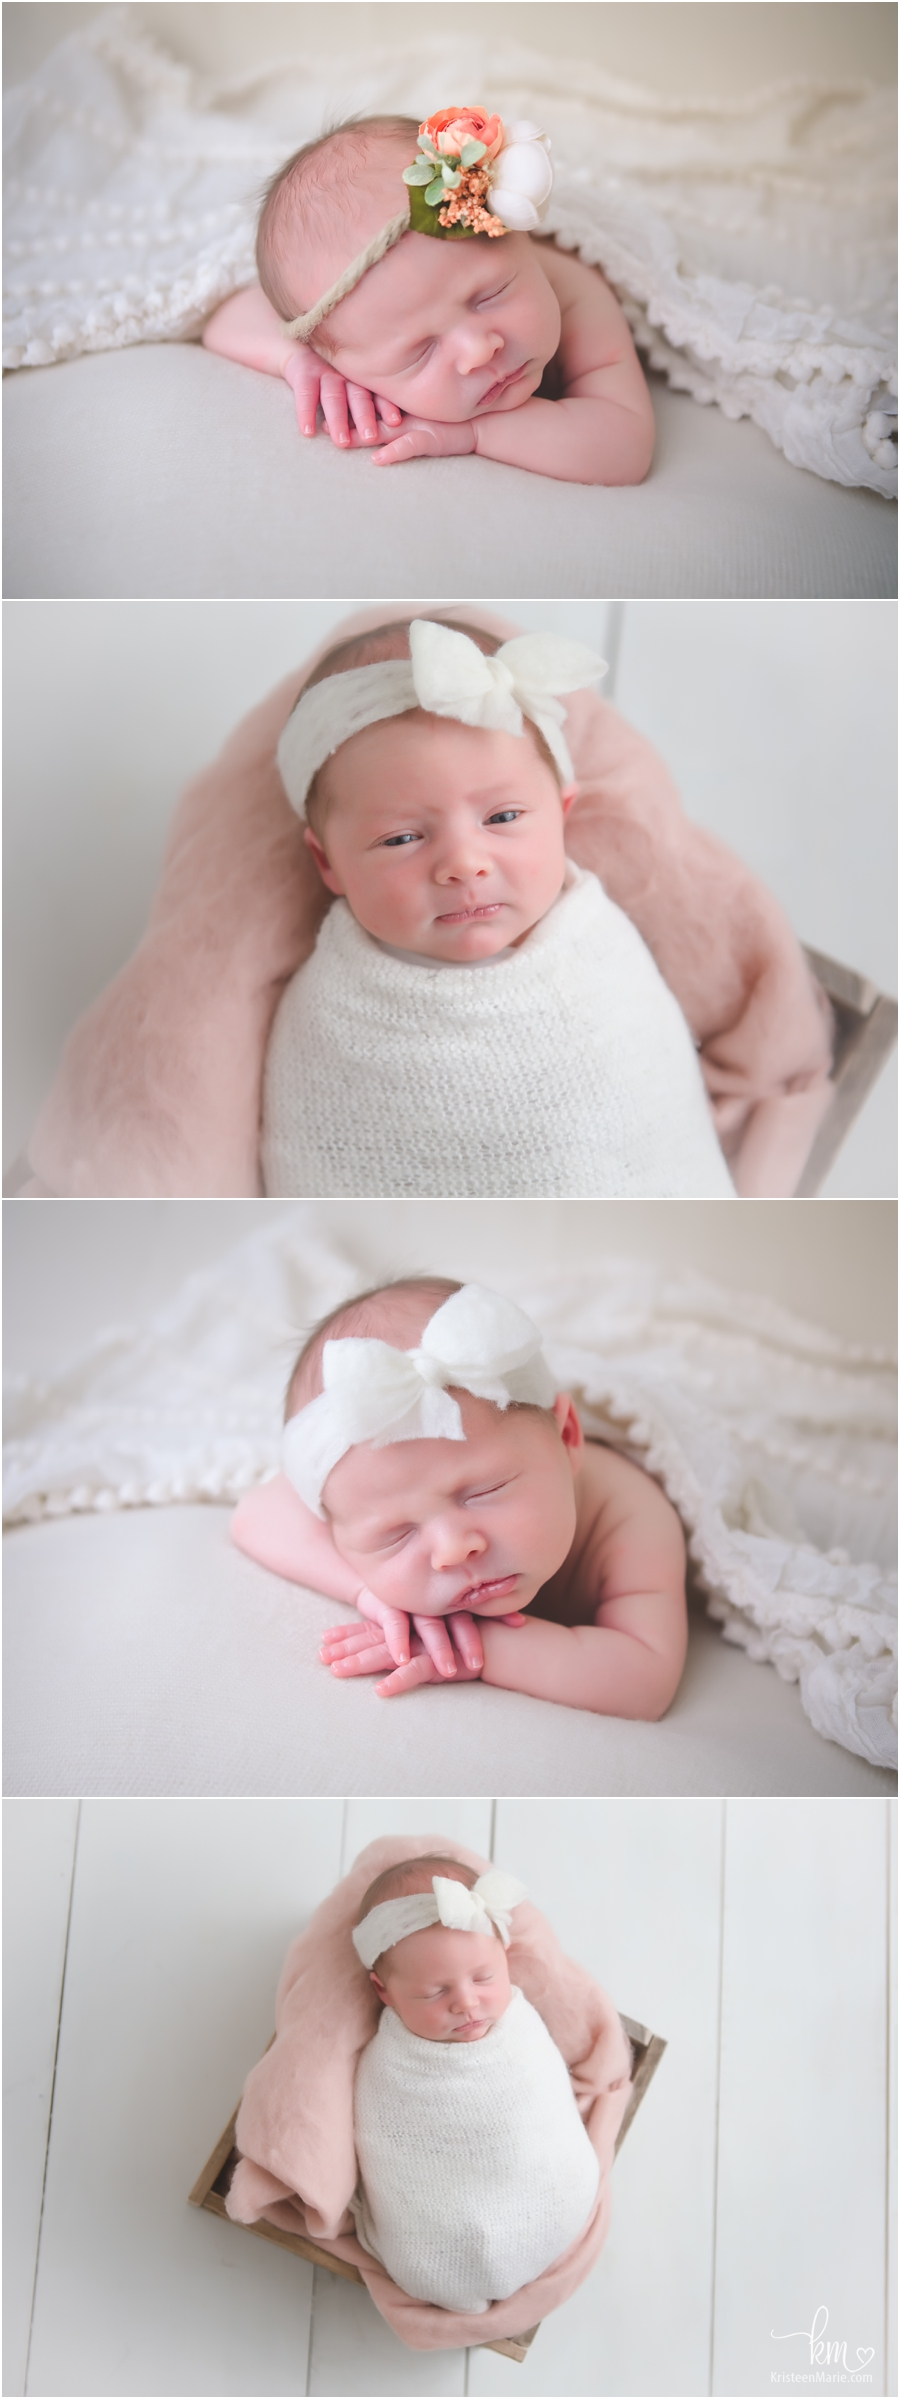 peach and cream newborn pictures - adorable newborn photography